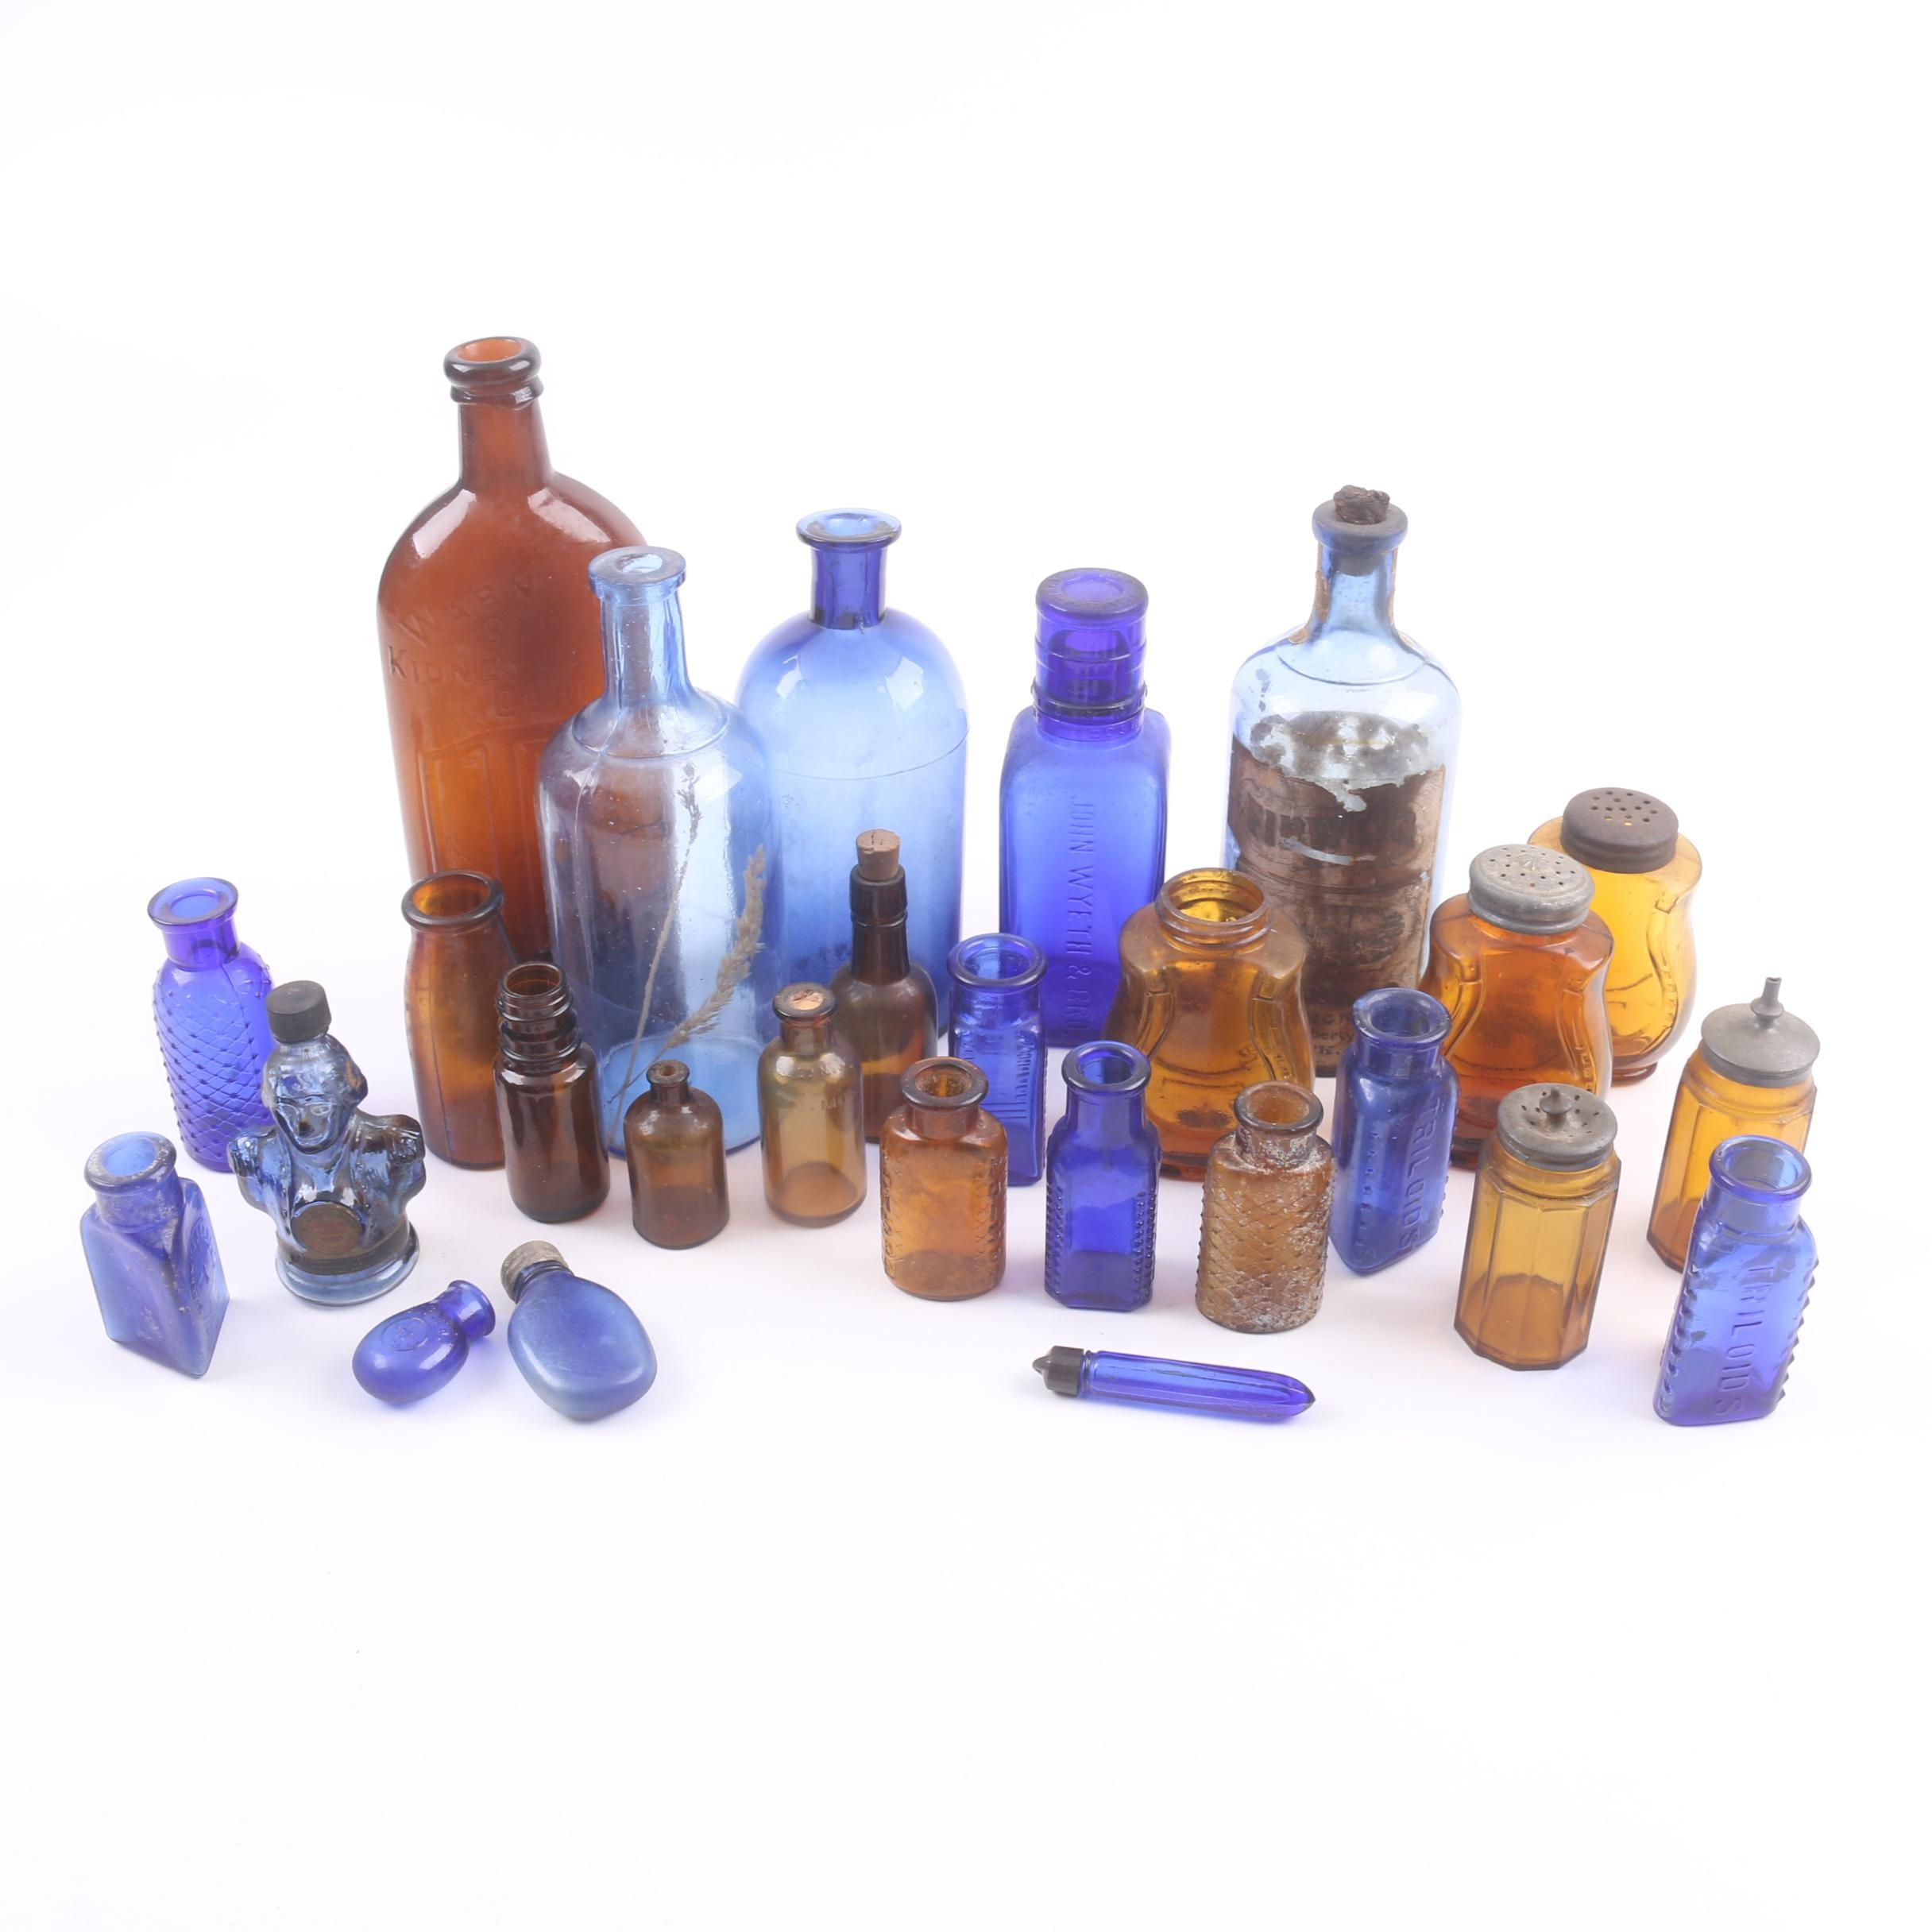 Antique Cobalt and Amber Glass Bottles and Vessels